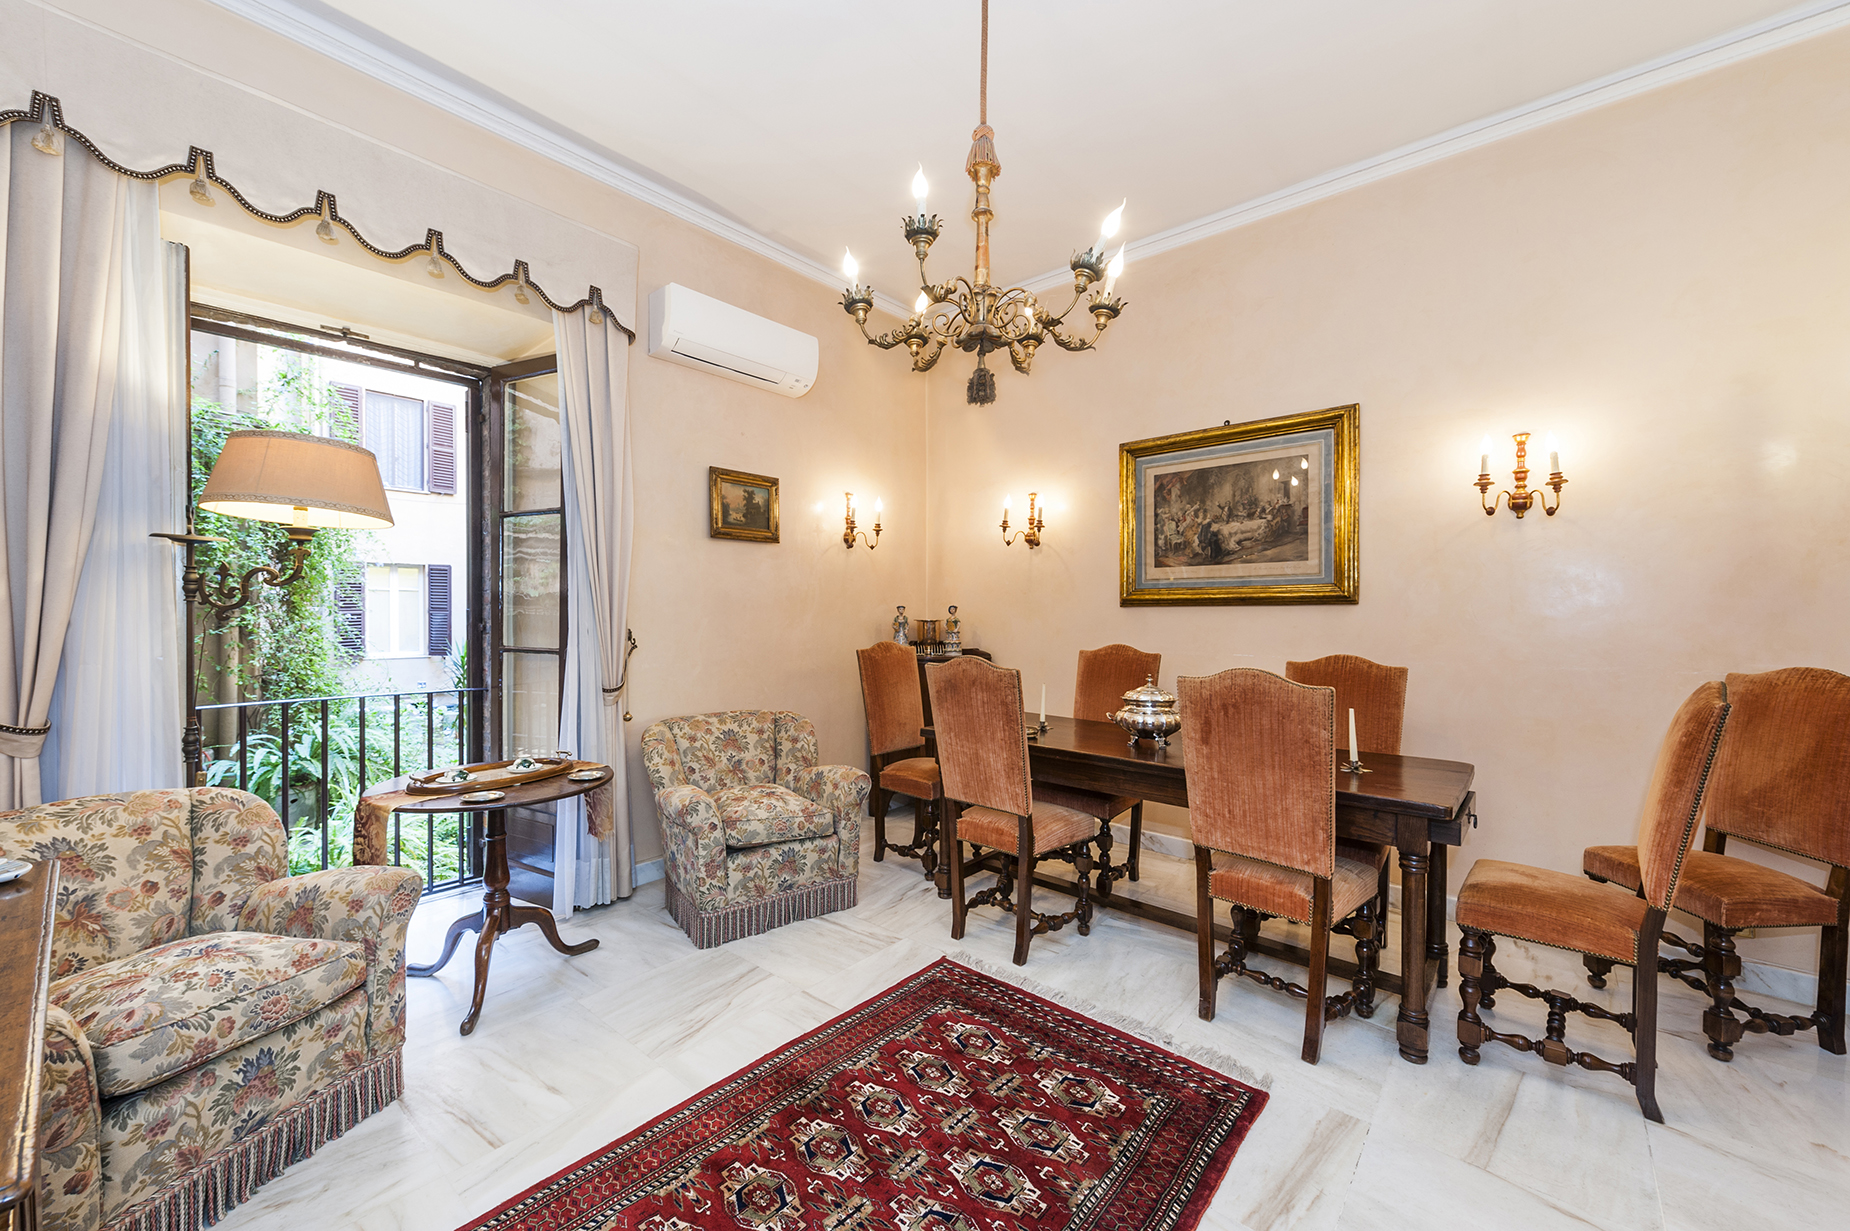 Appartement pour l Vente à Charming apartment in the heart of Rome Rome, Rome Italie